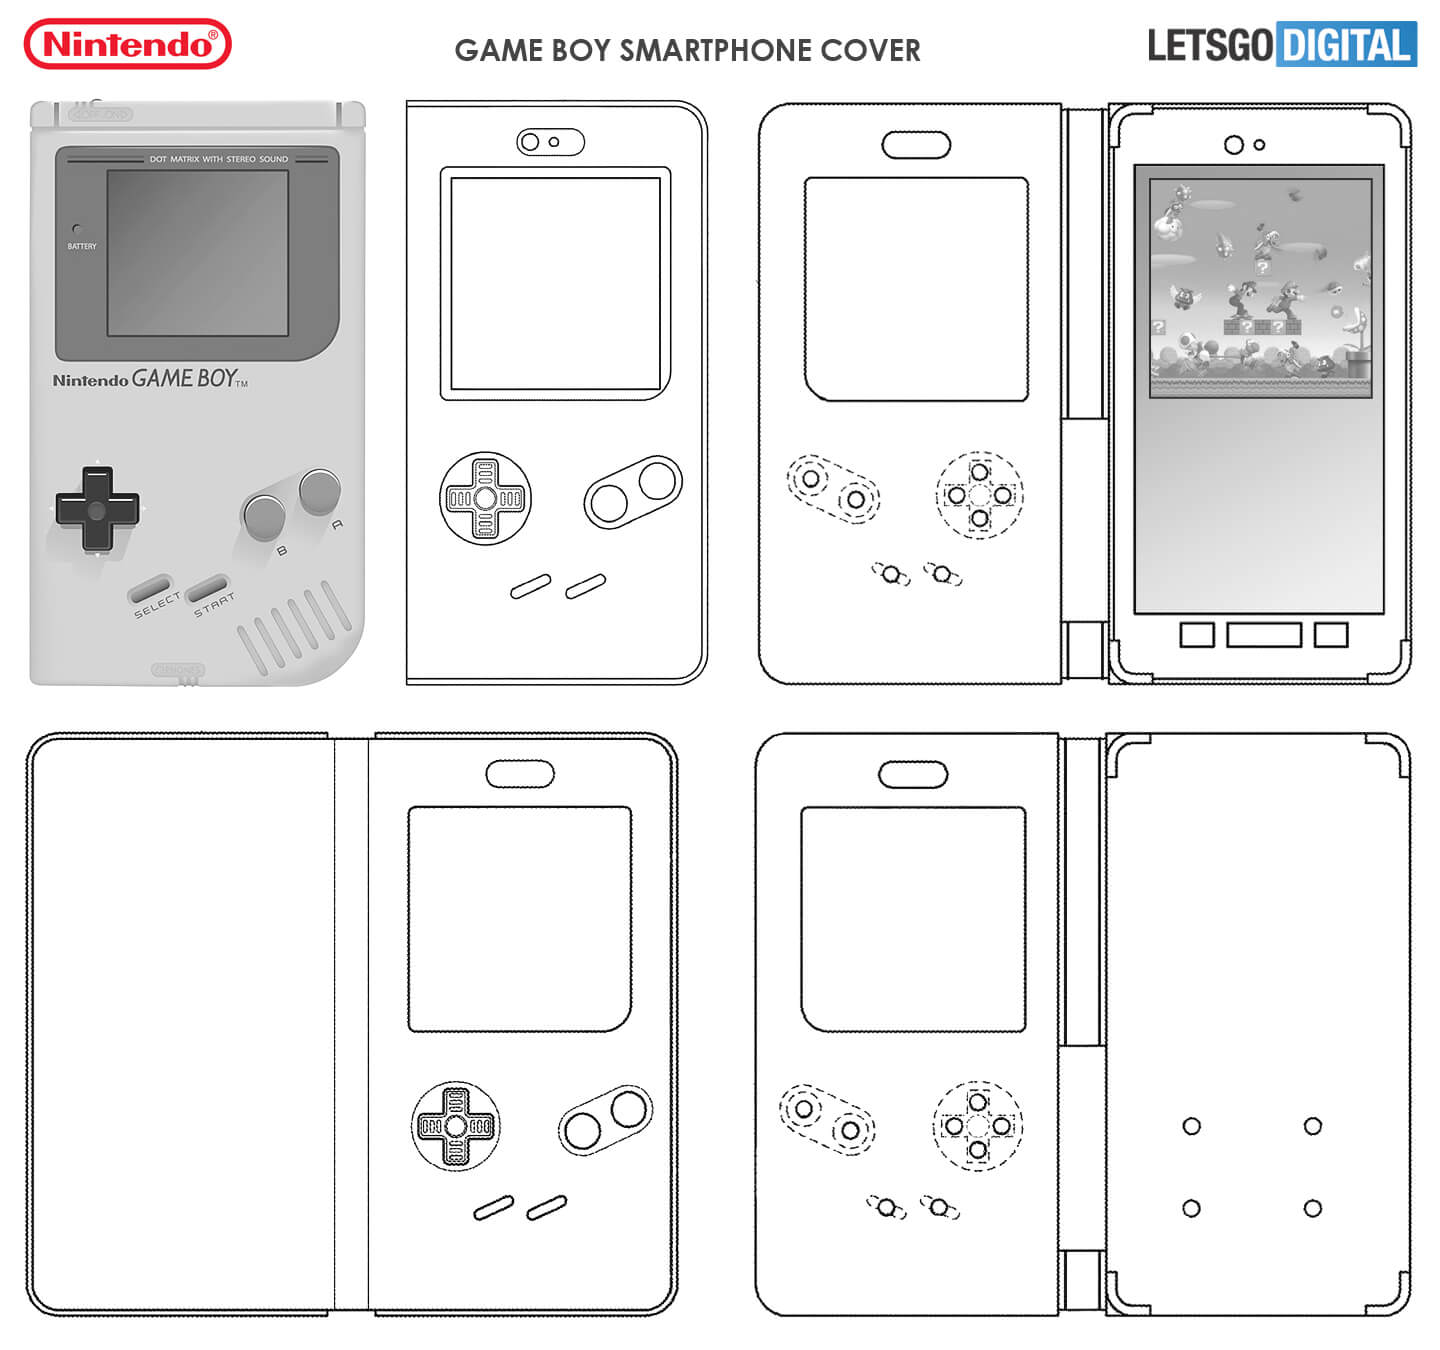 Nintendo Game Boy smartphone cover